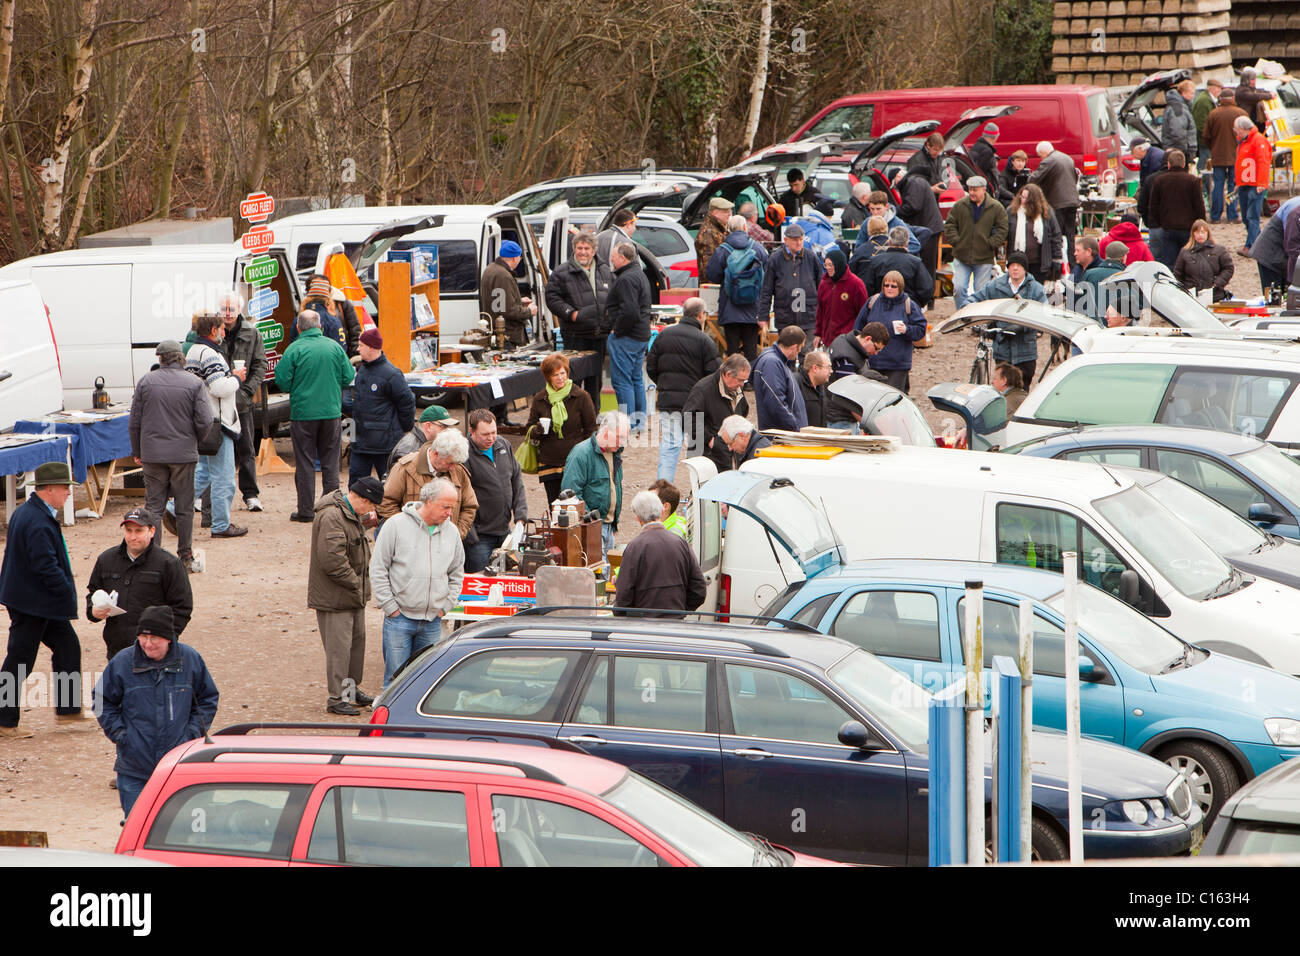 A railway enthusiasts sale in Loughborough, Leicestershire, UK. - Stock Image